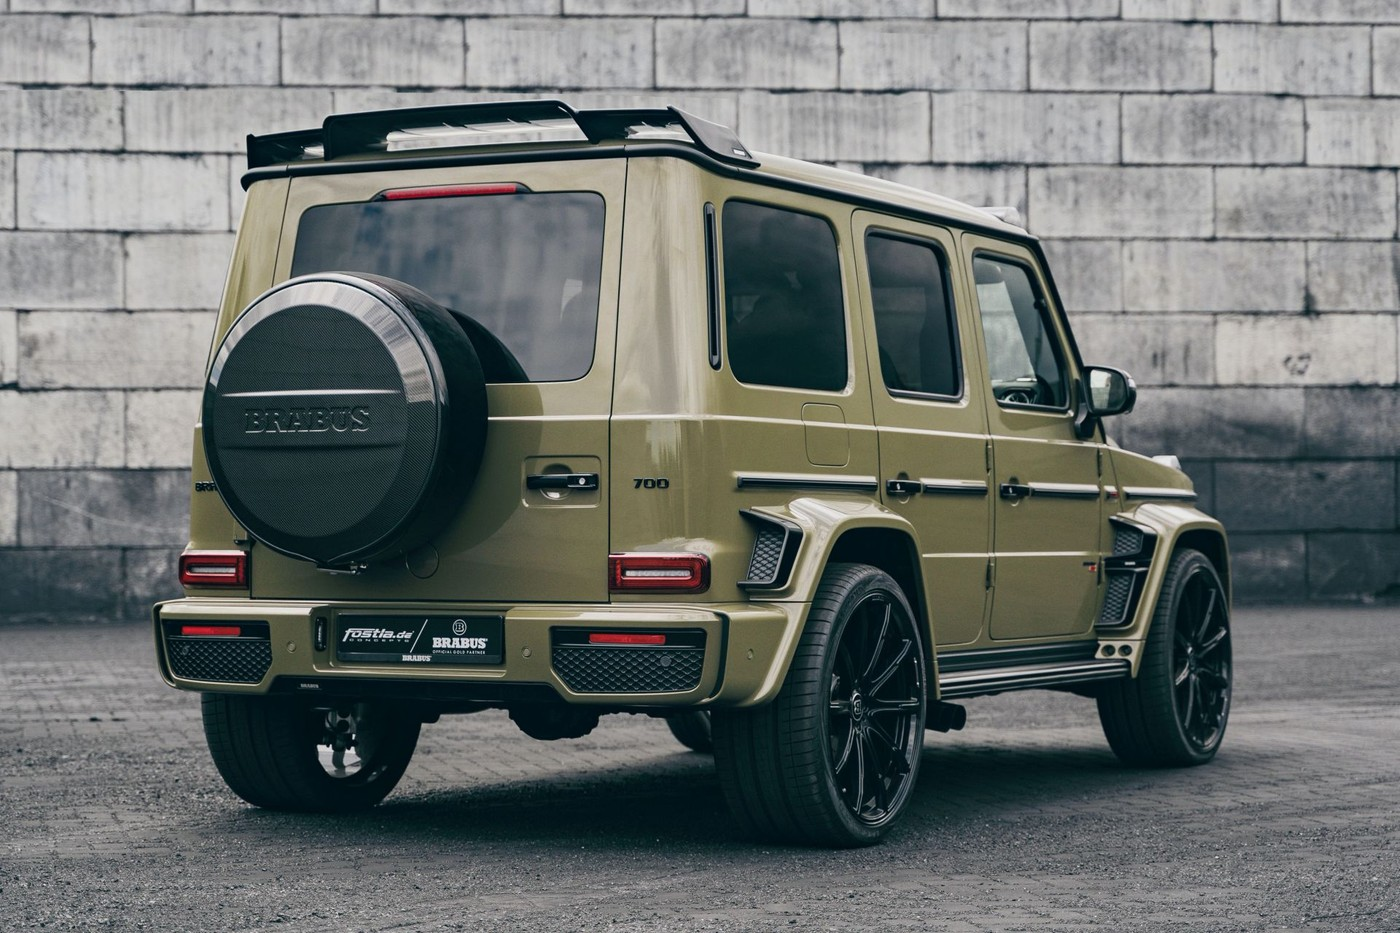 https___hk.hypebeast.com_files_2020_07_brabus-700-widestar-gains-an-army-look-co.jpg